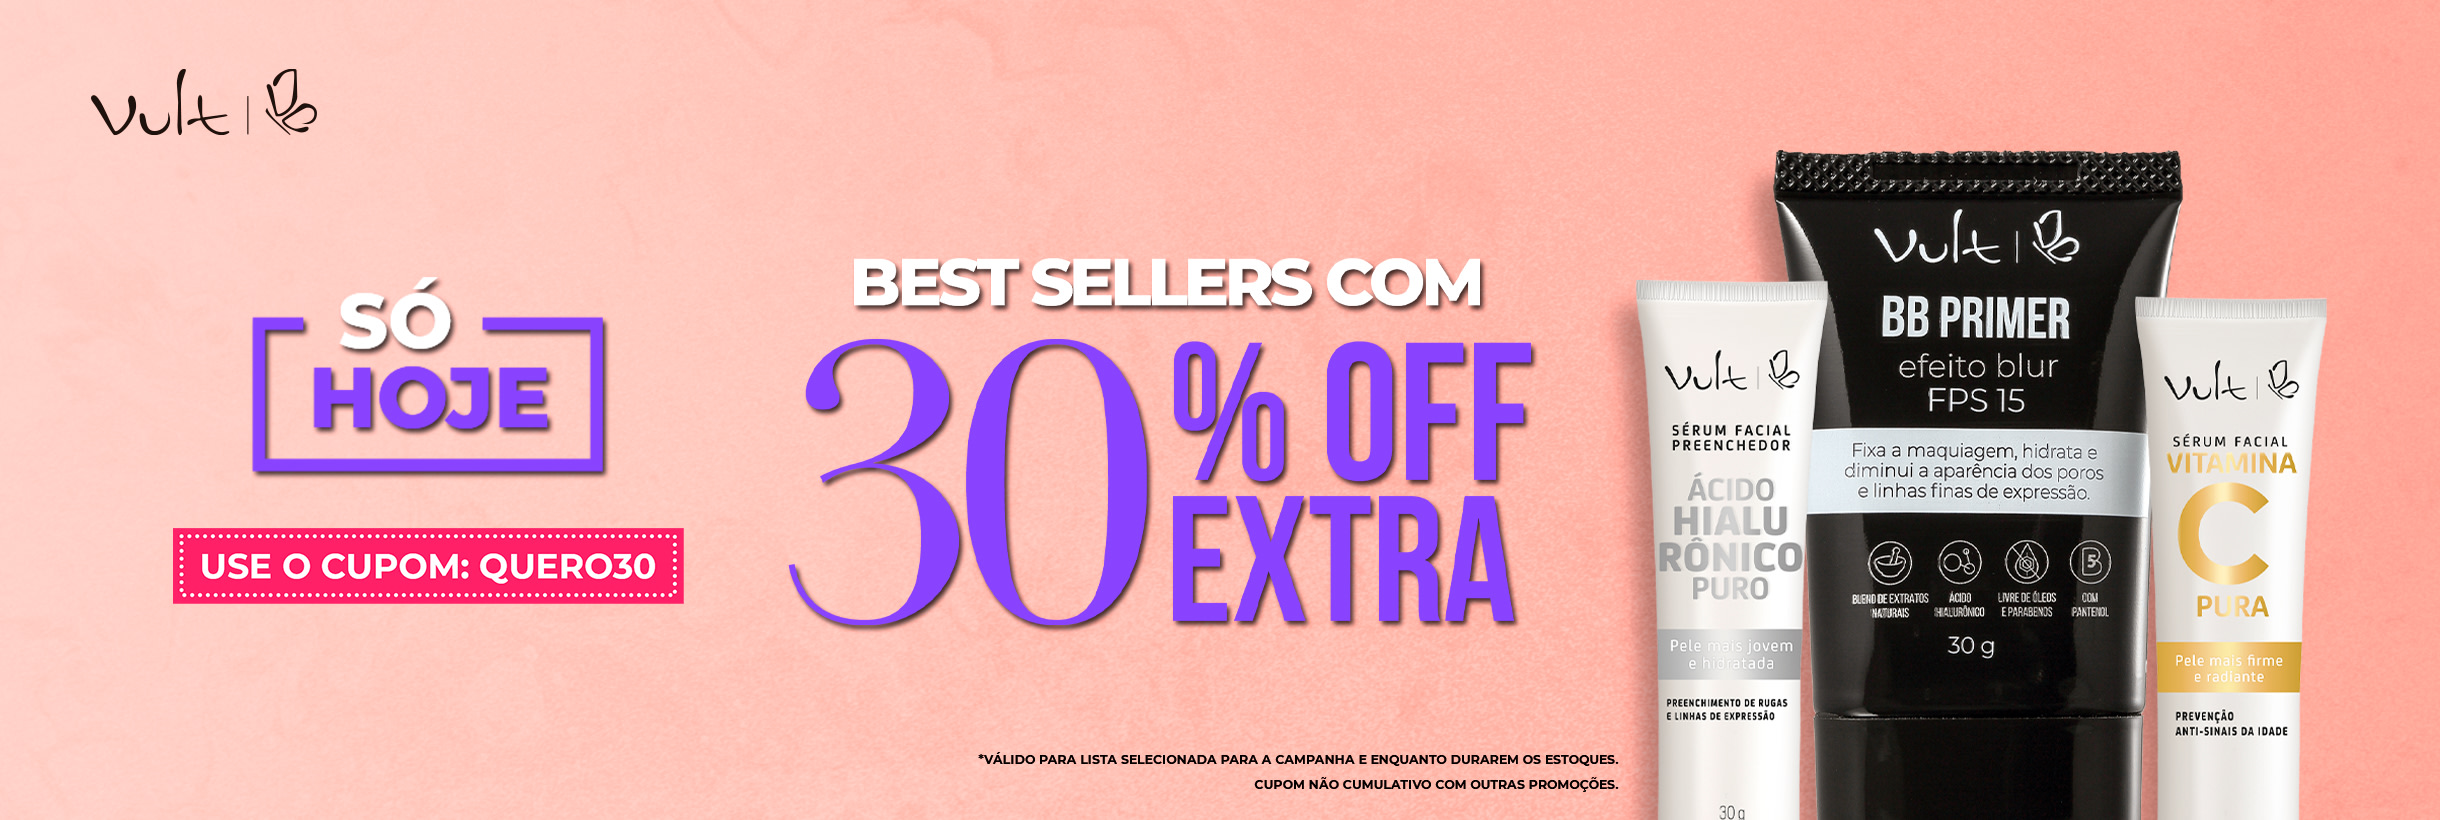 Best Sellers com 30%OFF Extra